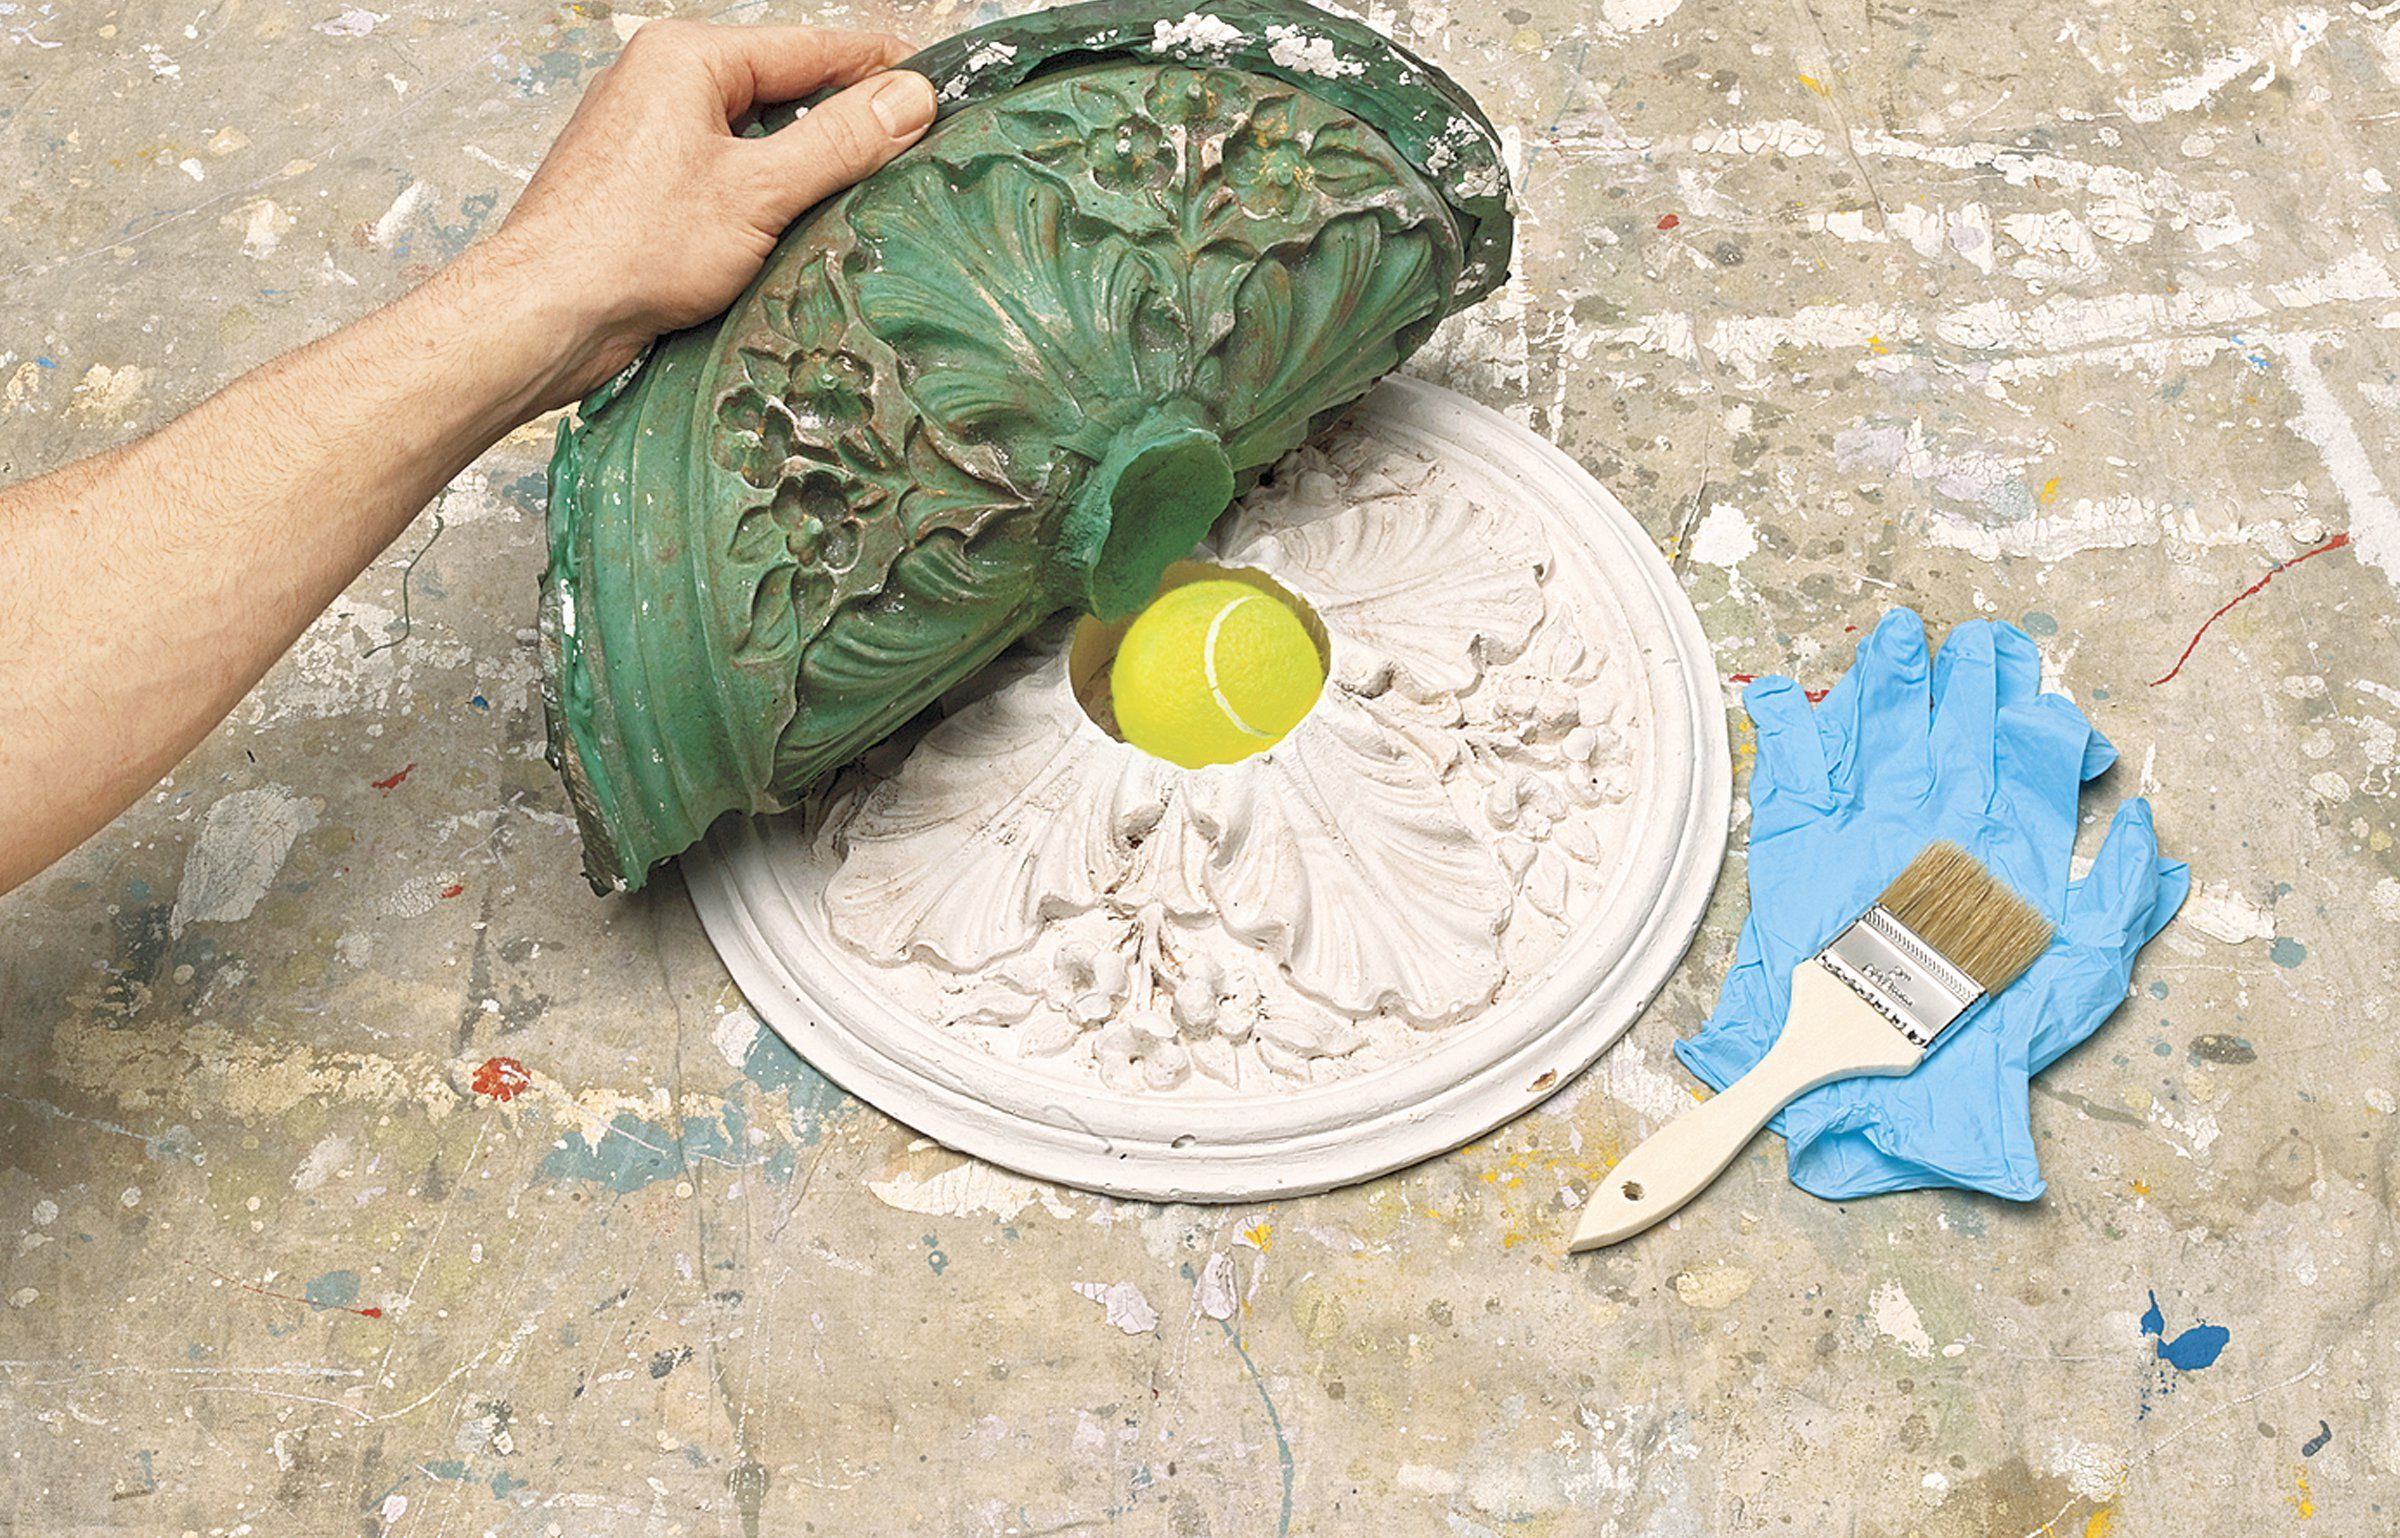 How To Make Custom Molds To Reproduce Plaster Period Details Throughout Your Home Diy Crafts Furniture Appliques